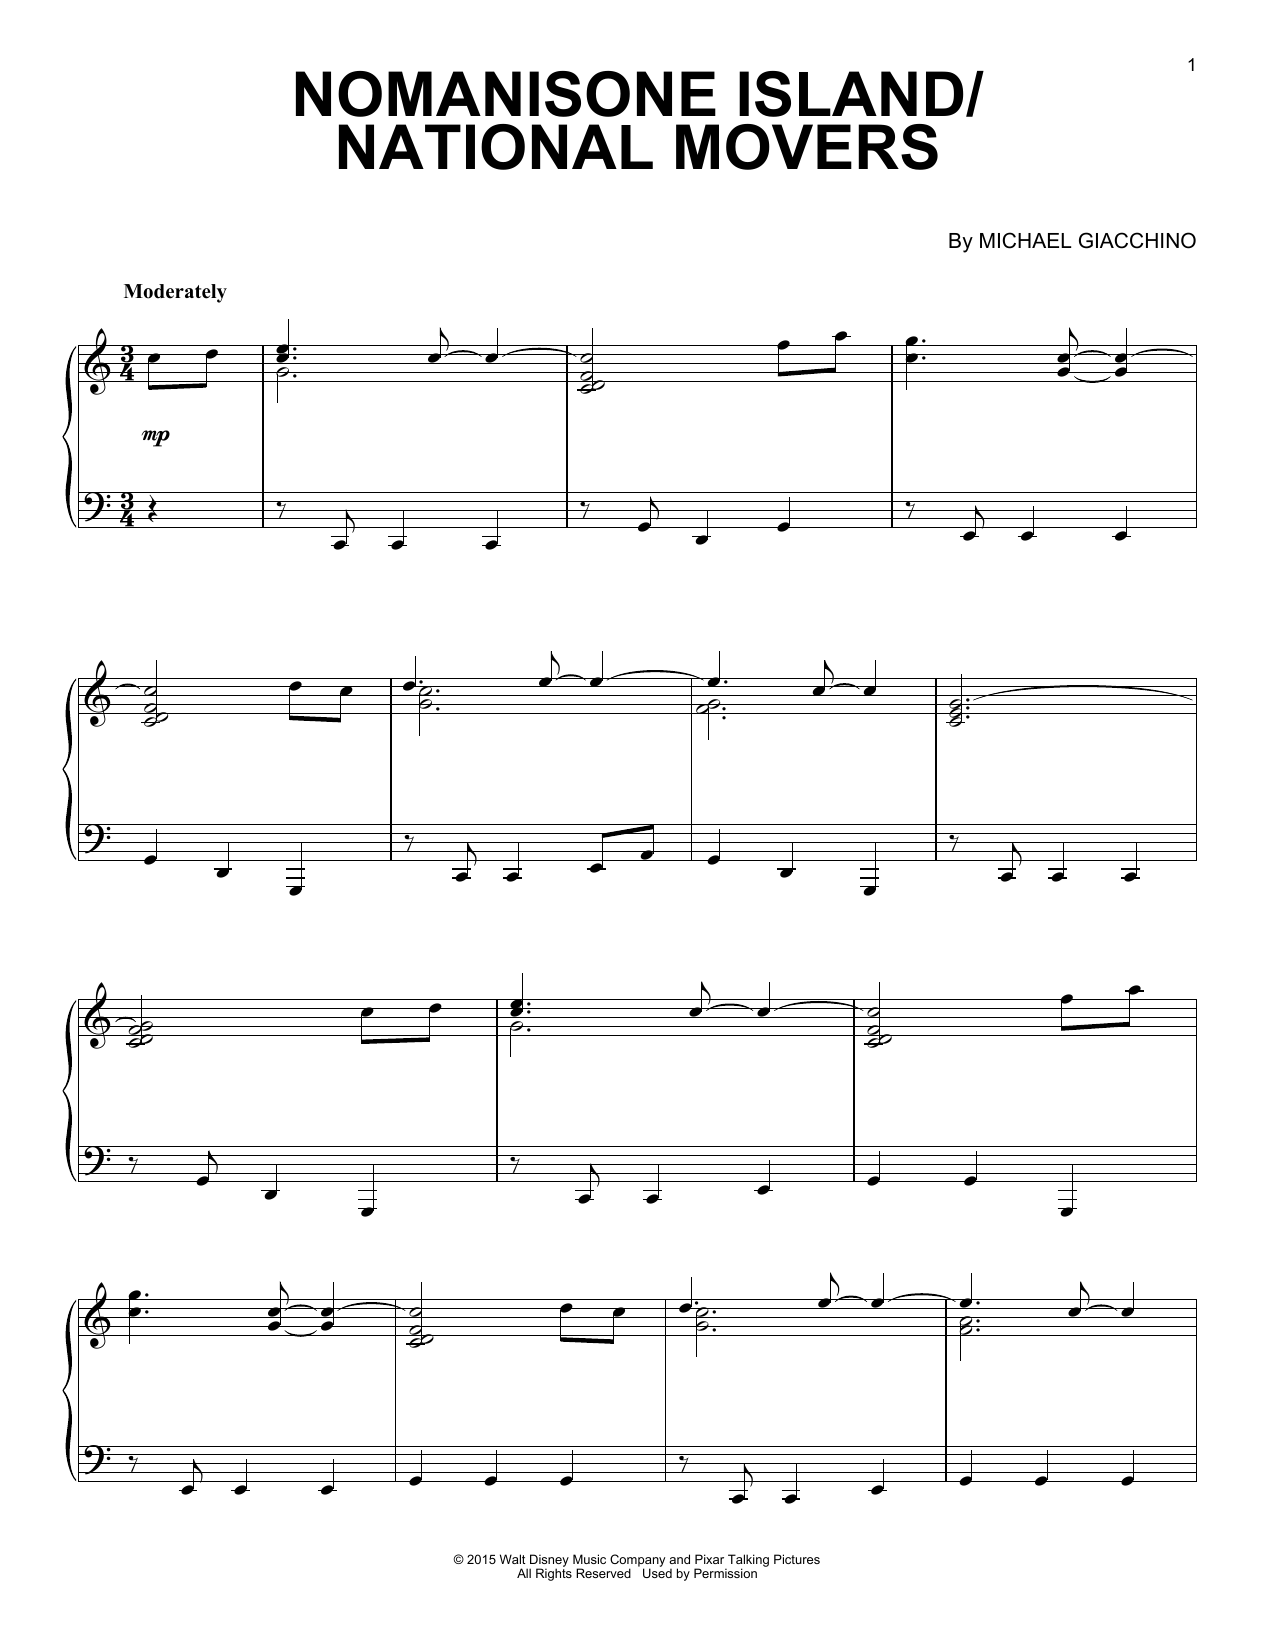 Download Michael Giacchino 'Nomanisone Island/National Movers' Digital Sheet Music Notes & Chords and start playing in minutes